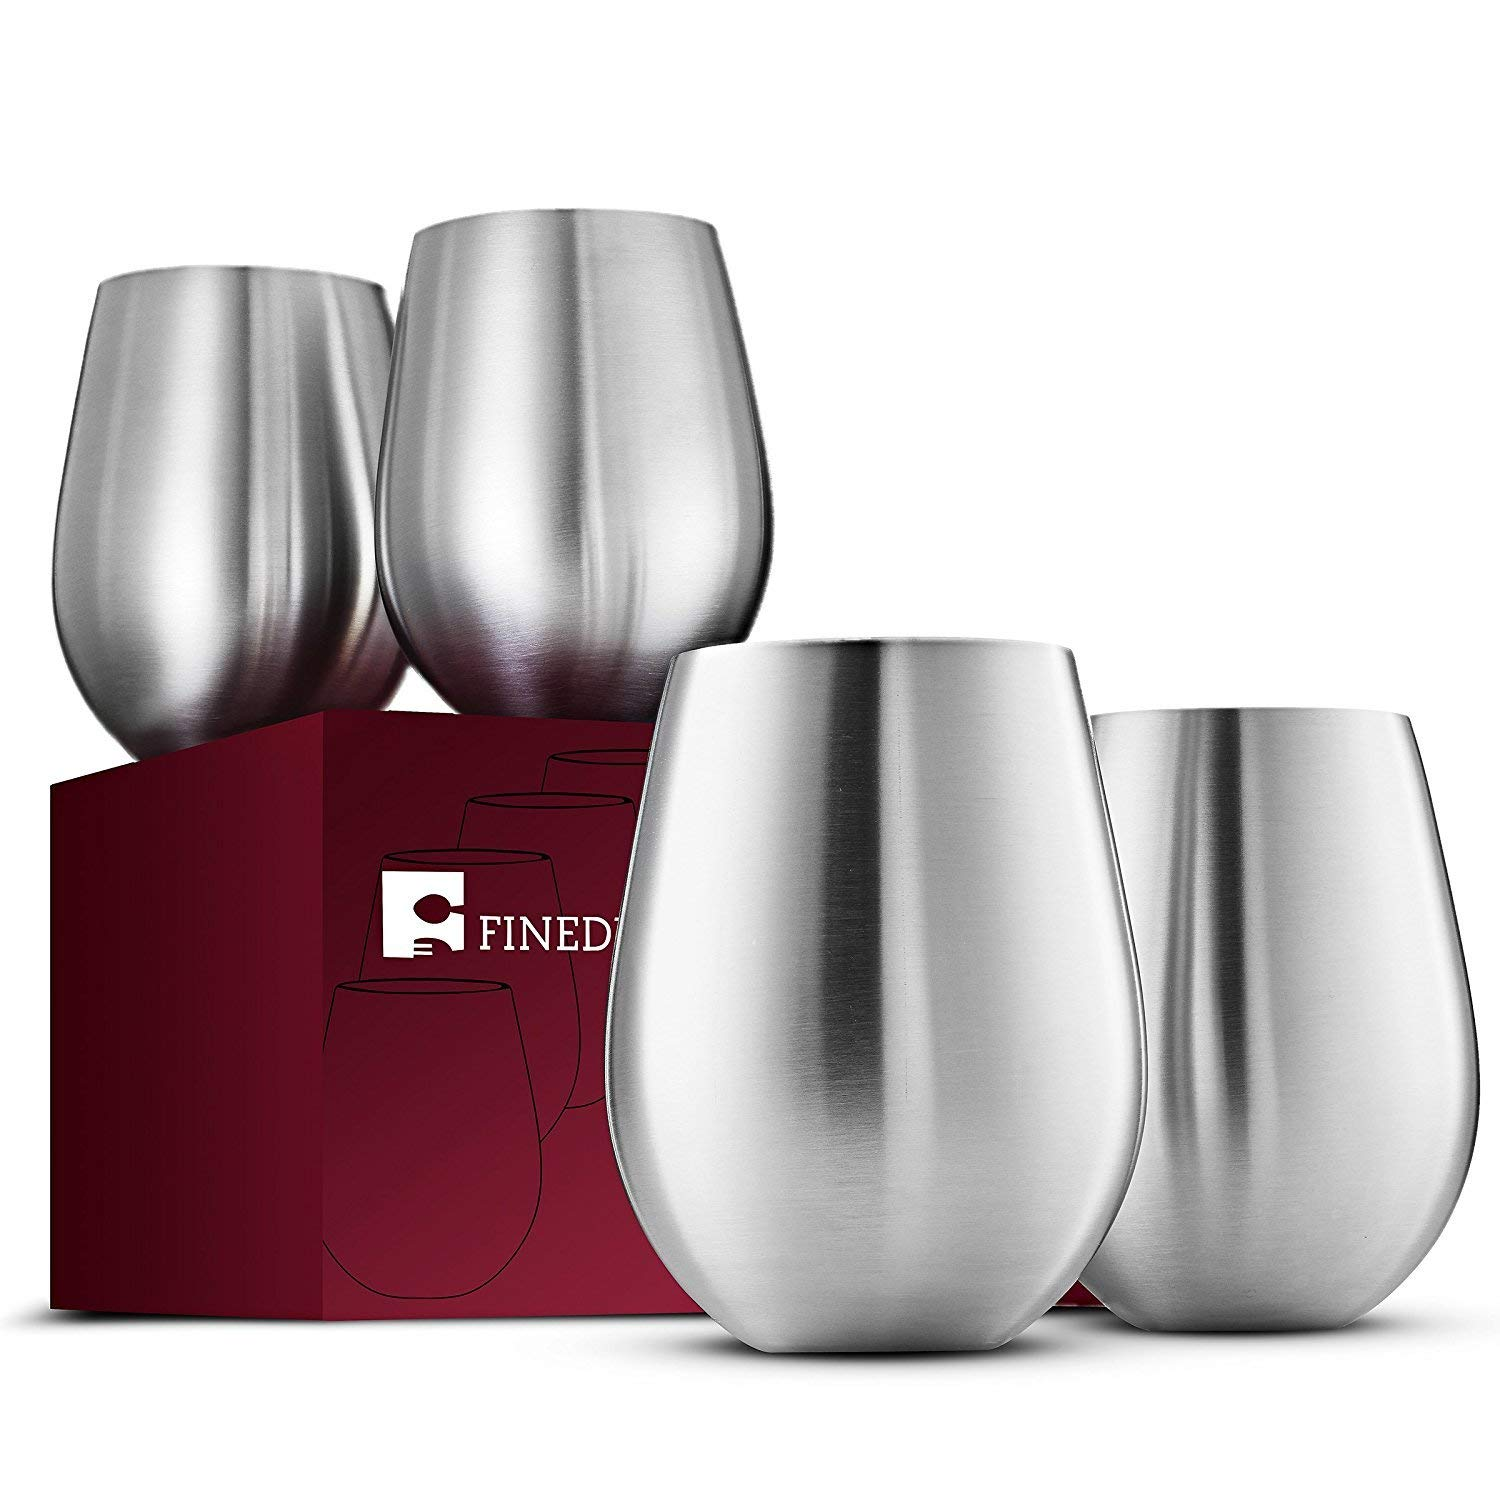 Finedine Stainless Steel Wine Glasses - Set of 4